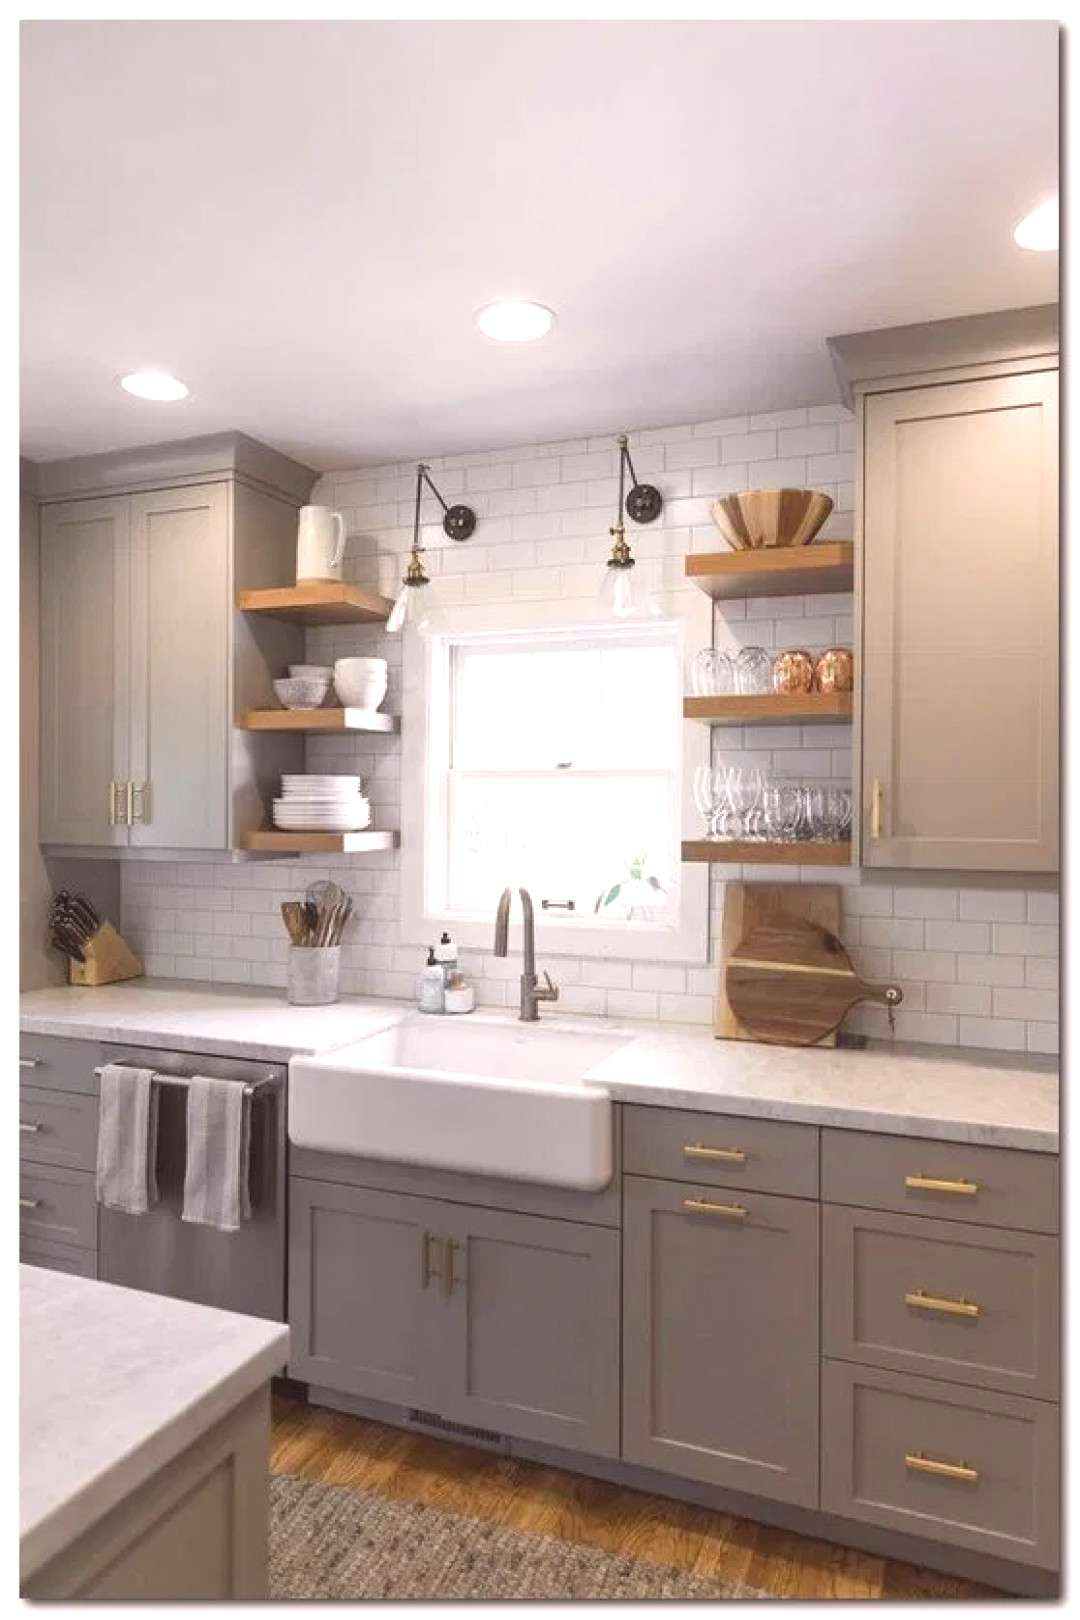 15 Clever Small Kitchen Remodel Open Shelves Ideas 15 Clever Small Kitchen Remodel Open Shelves Ide